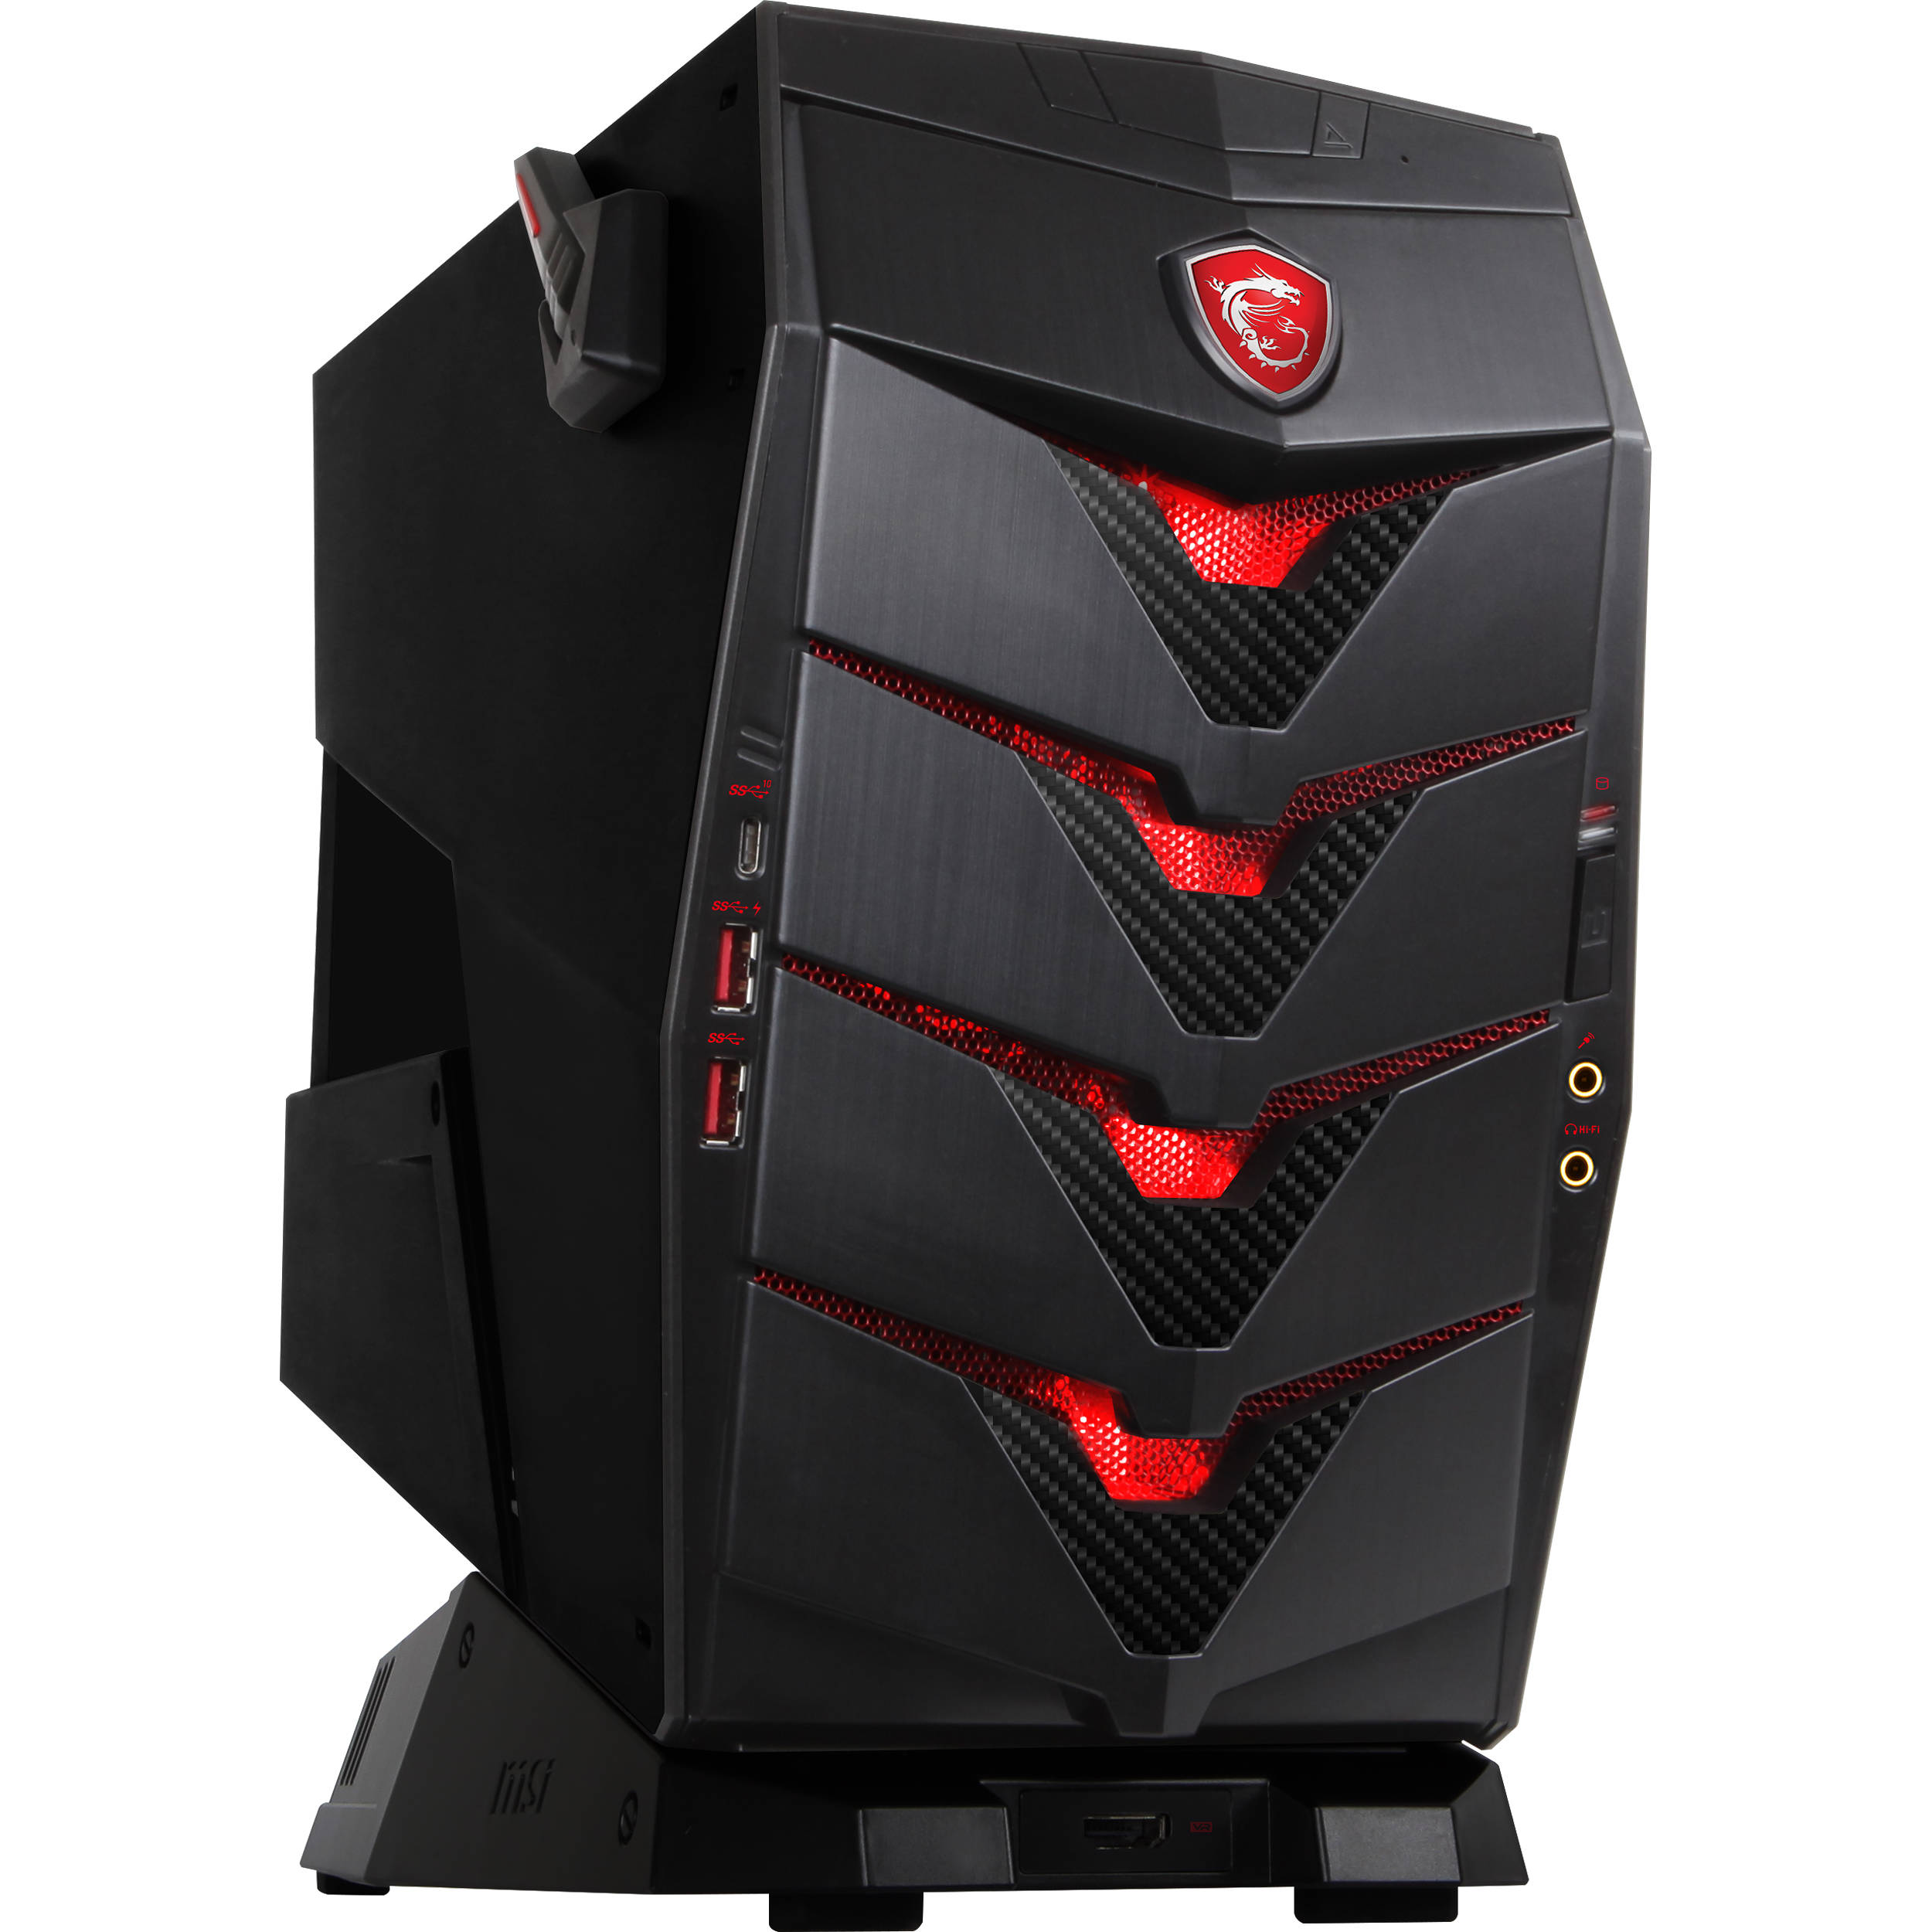 msi aegis x3 gaming desktop computer aegis x3 vr7re 002us b h. Black Bedroom Furniture Sets. Home Design Ideas